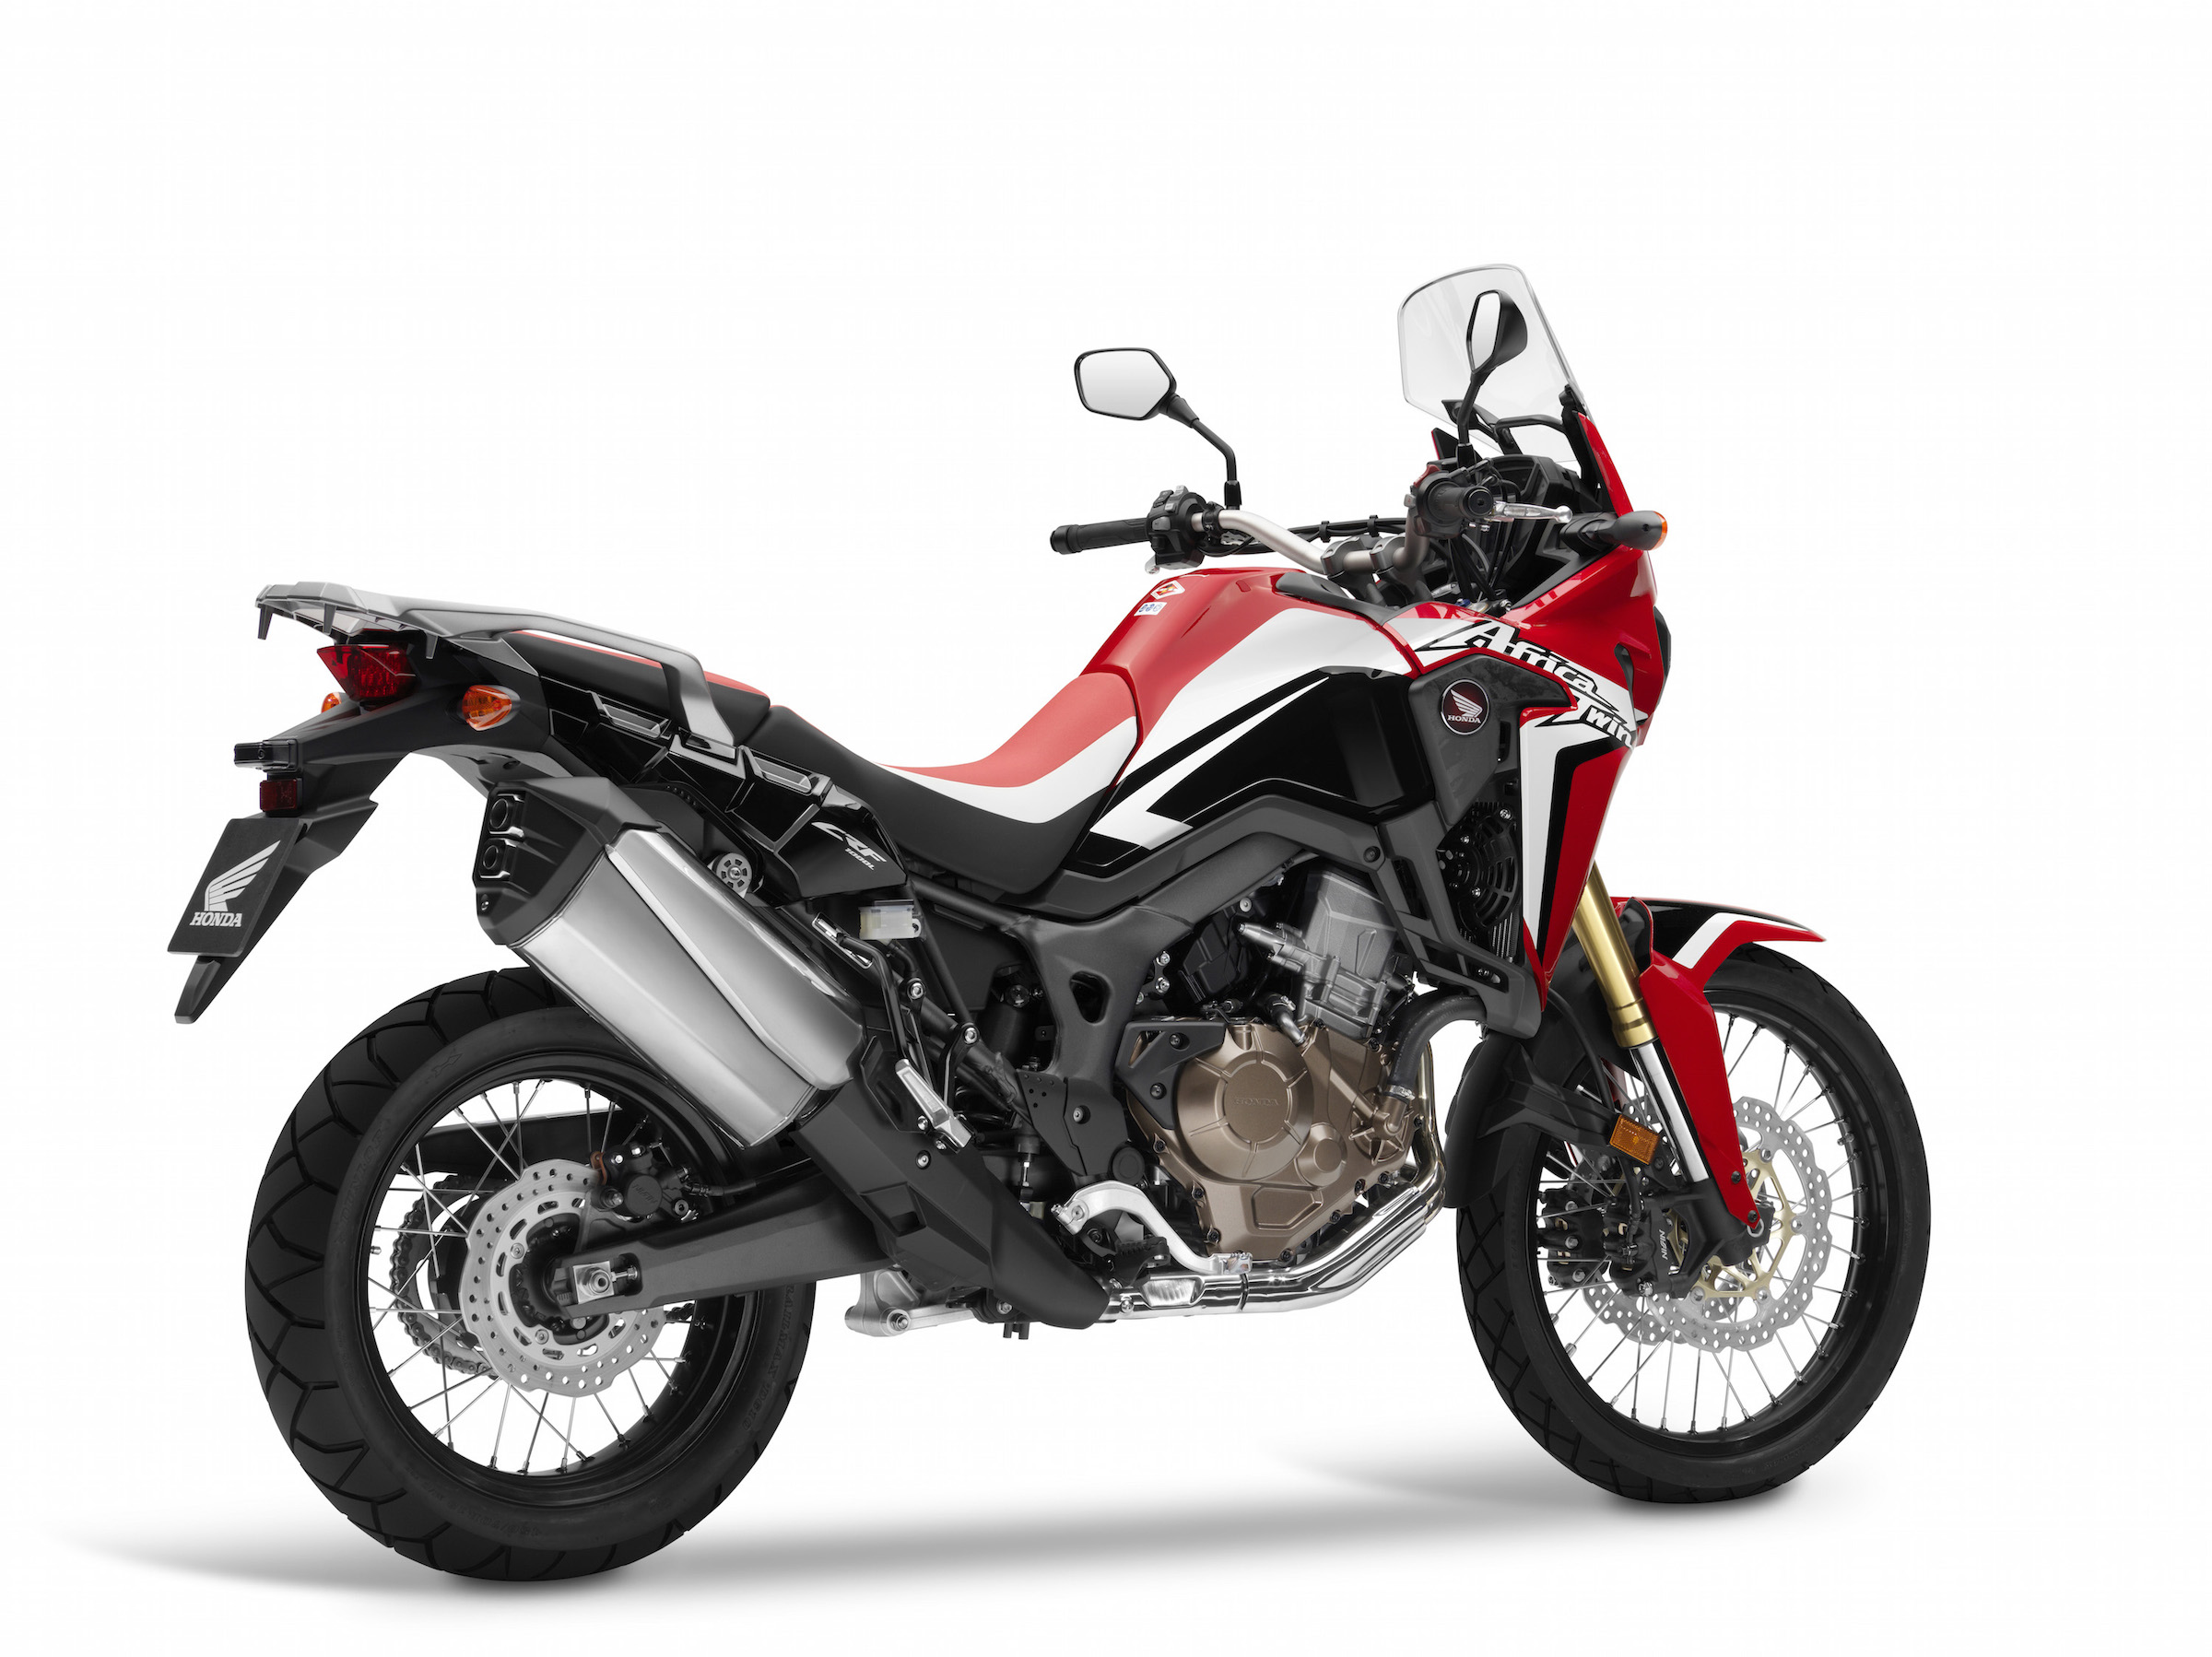 honda africa twin priced u s 12 999 13 699 with dct motorcycle news. Black Bedroom Furniture Sets. Home Design Ideas